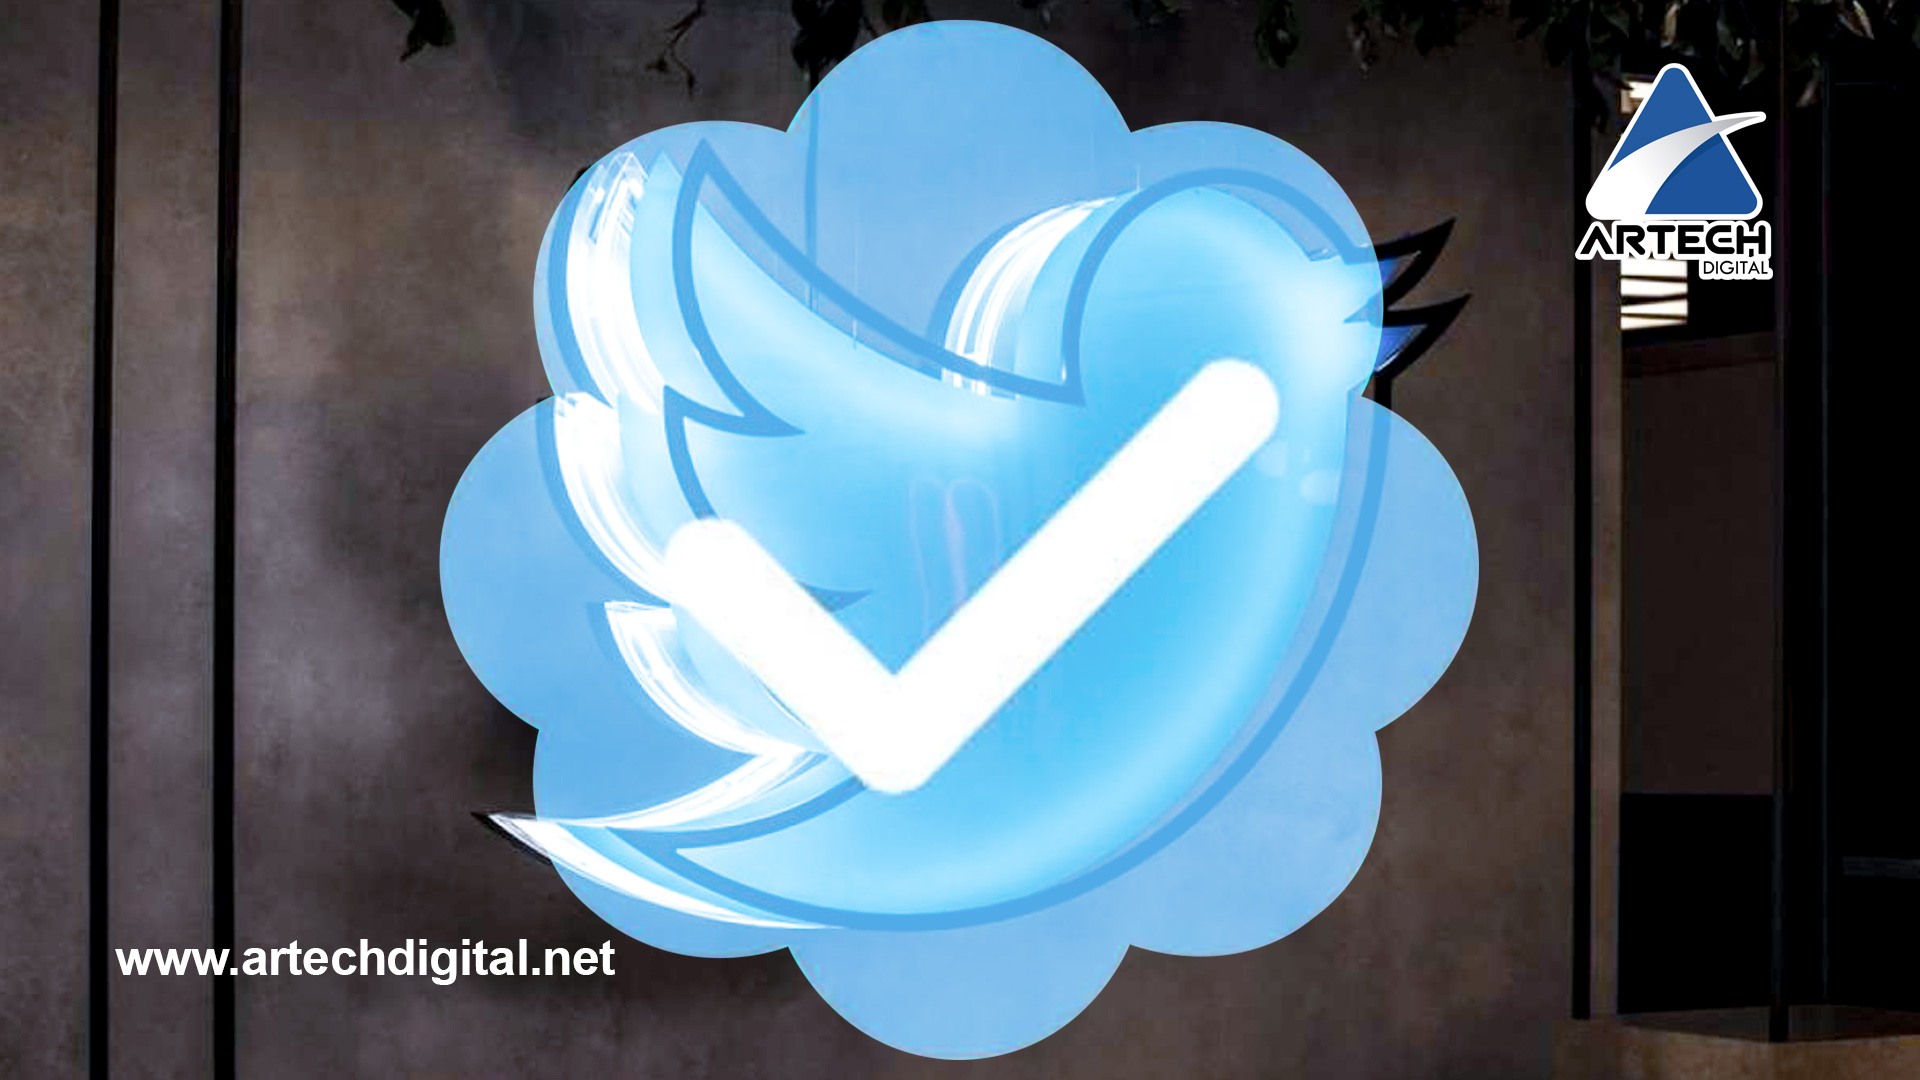 Twitter verification - Artechdidital